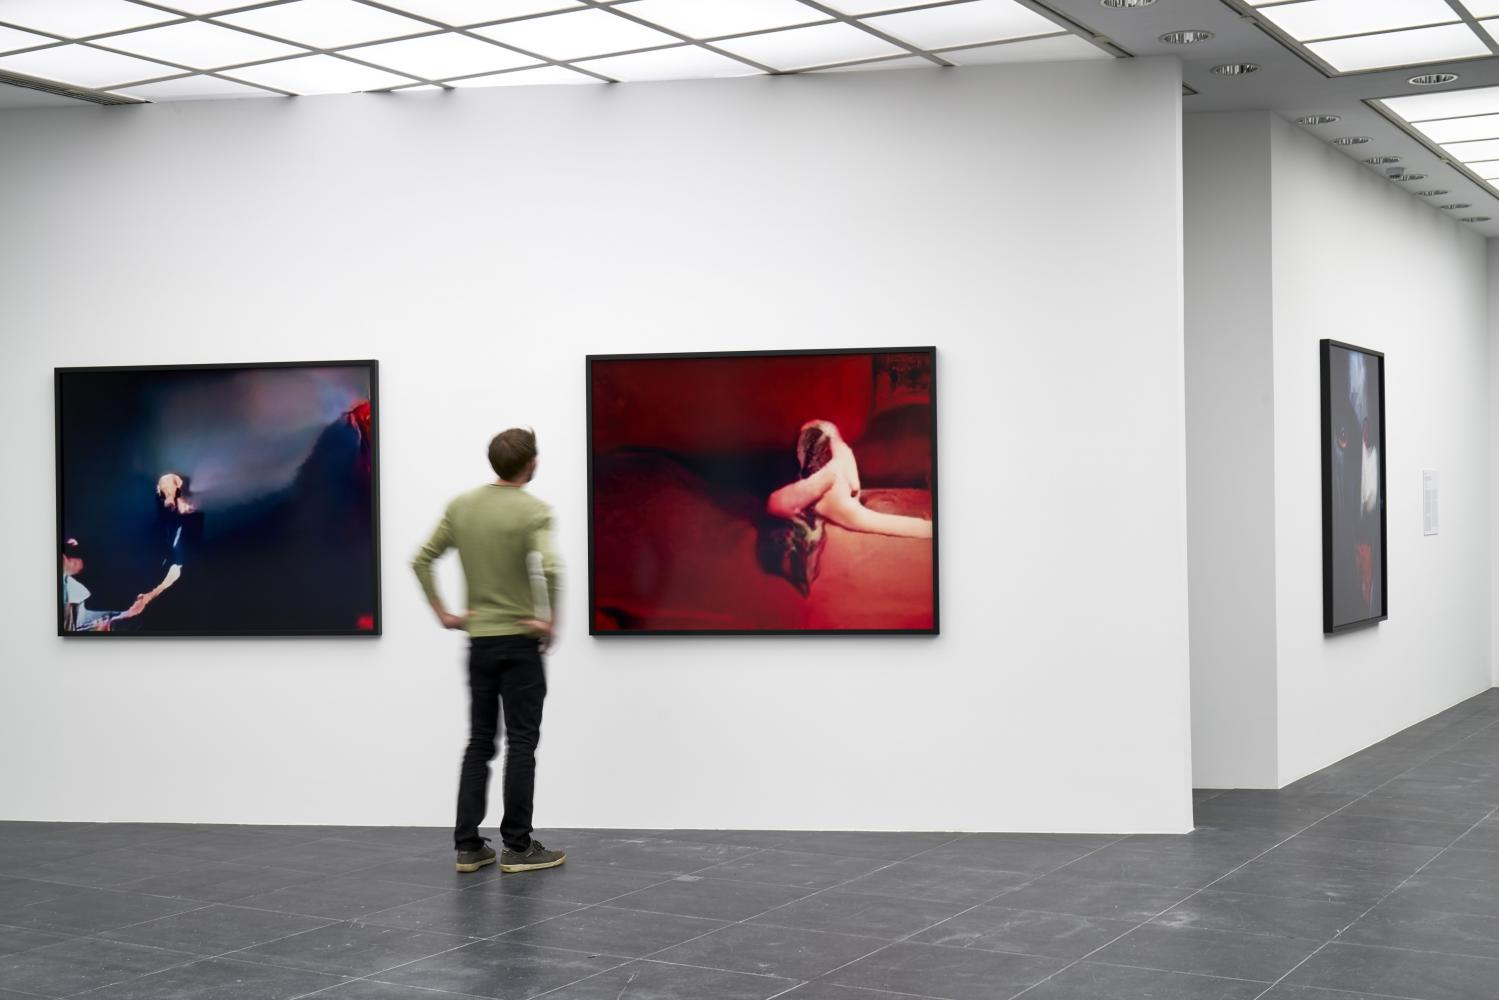 Foto: N. Miguletz, © Frankfurter Kunstverein, Courtesy of the artist and Metro Pictures, New York